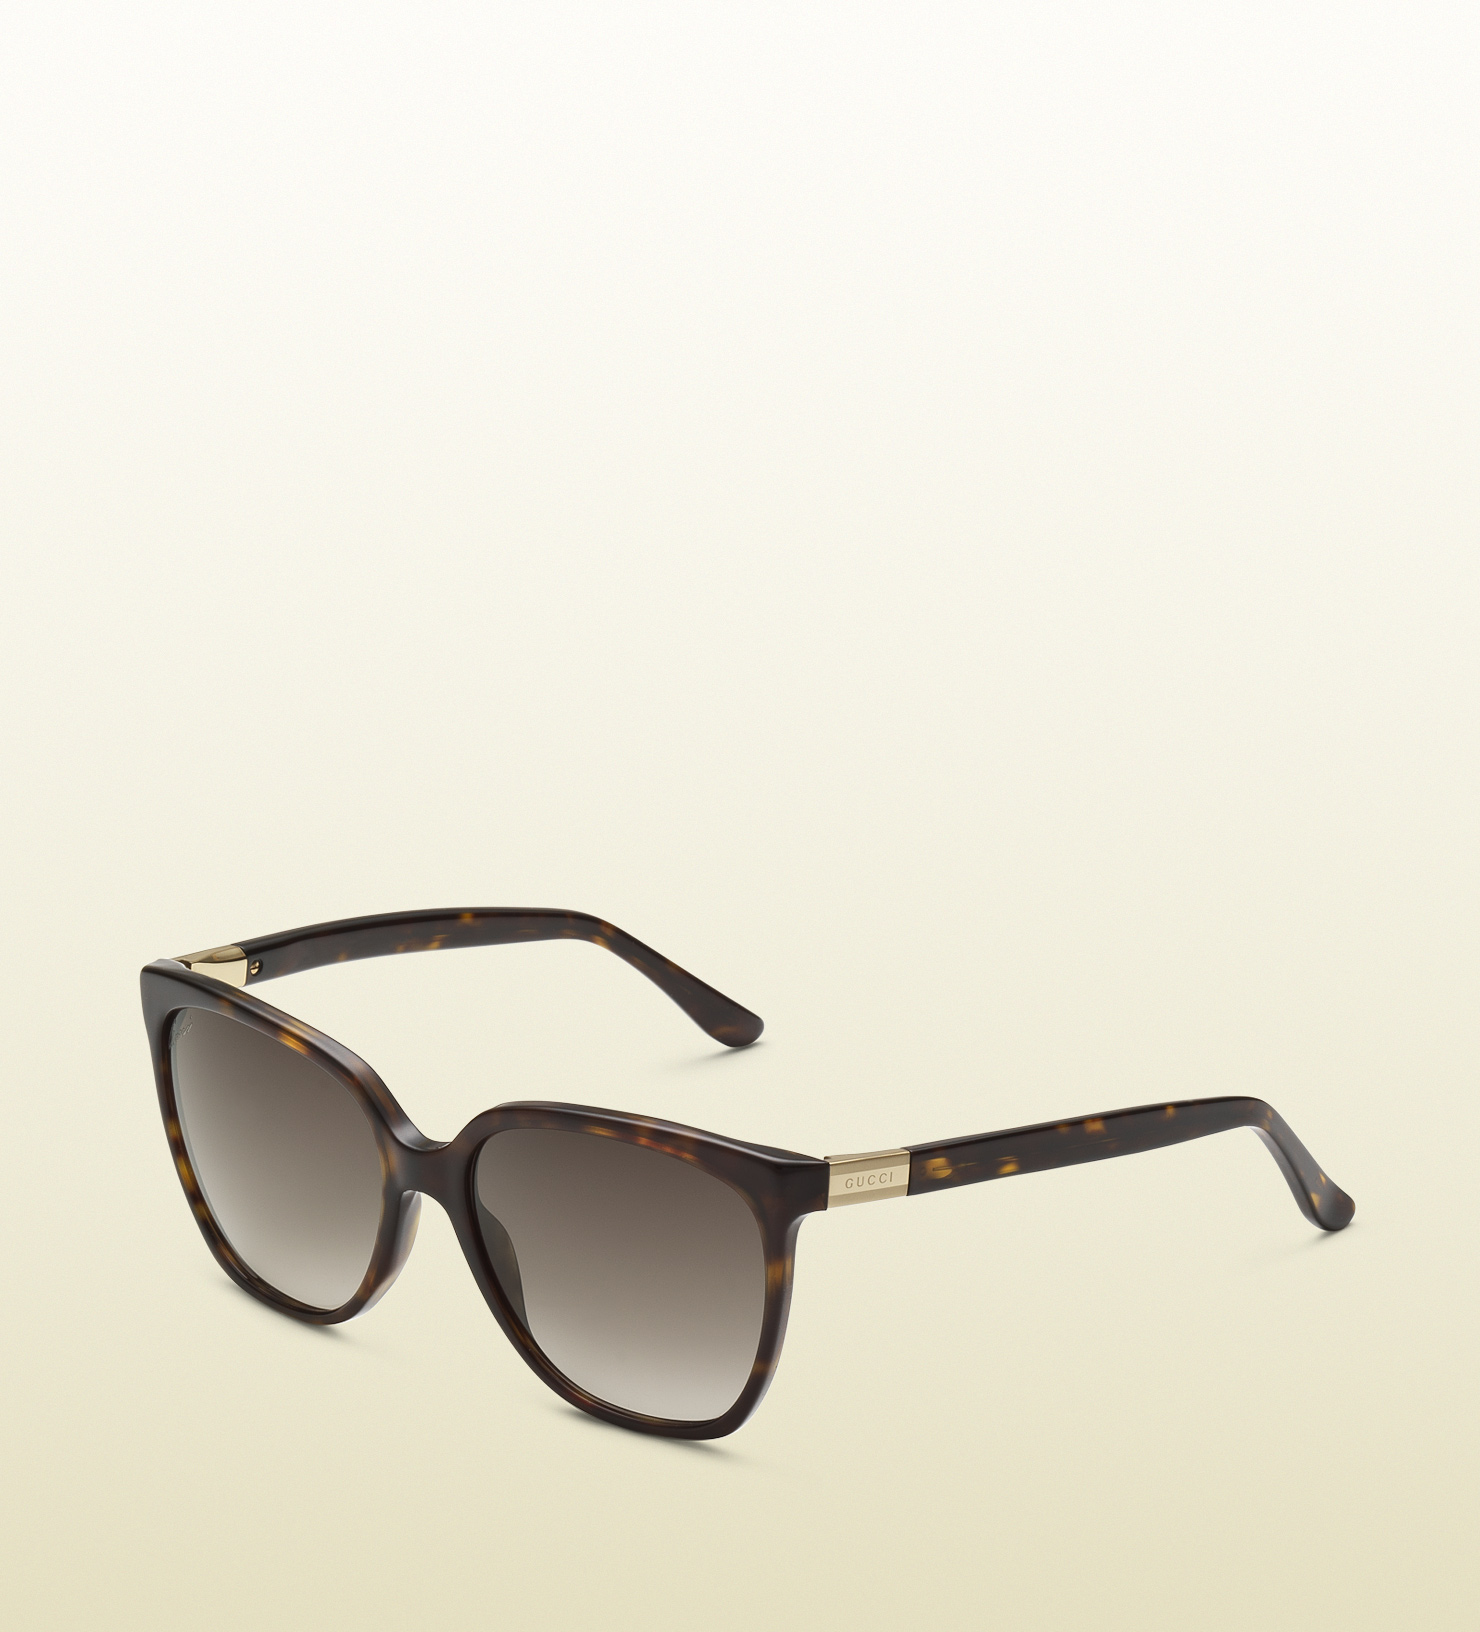 044783900c1 Gucci Black Rectangle Wayfarer Sunglasses